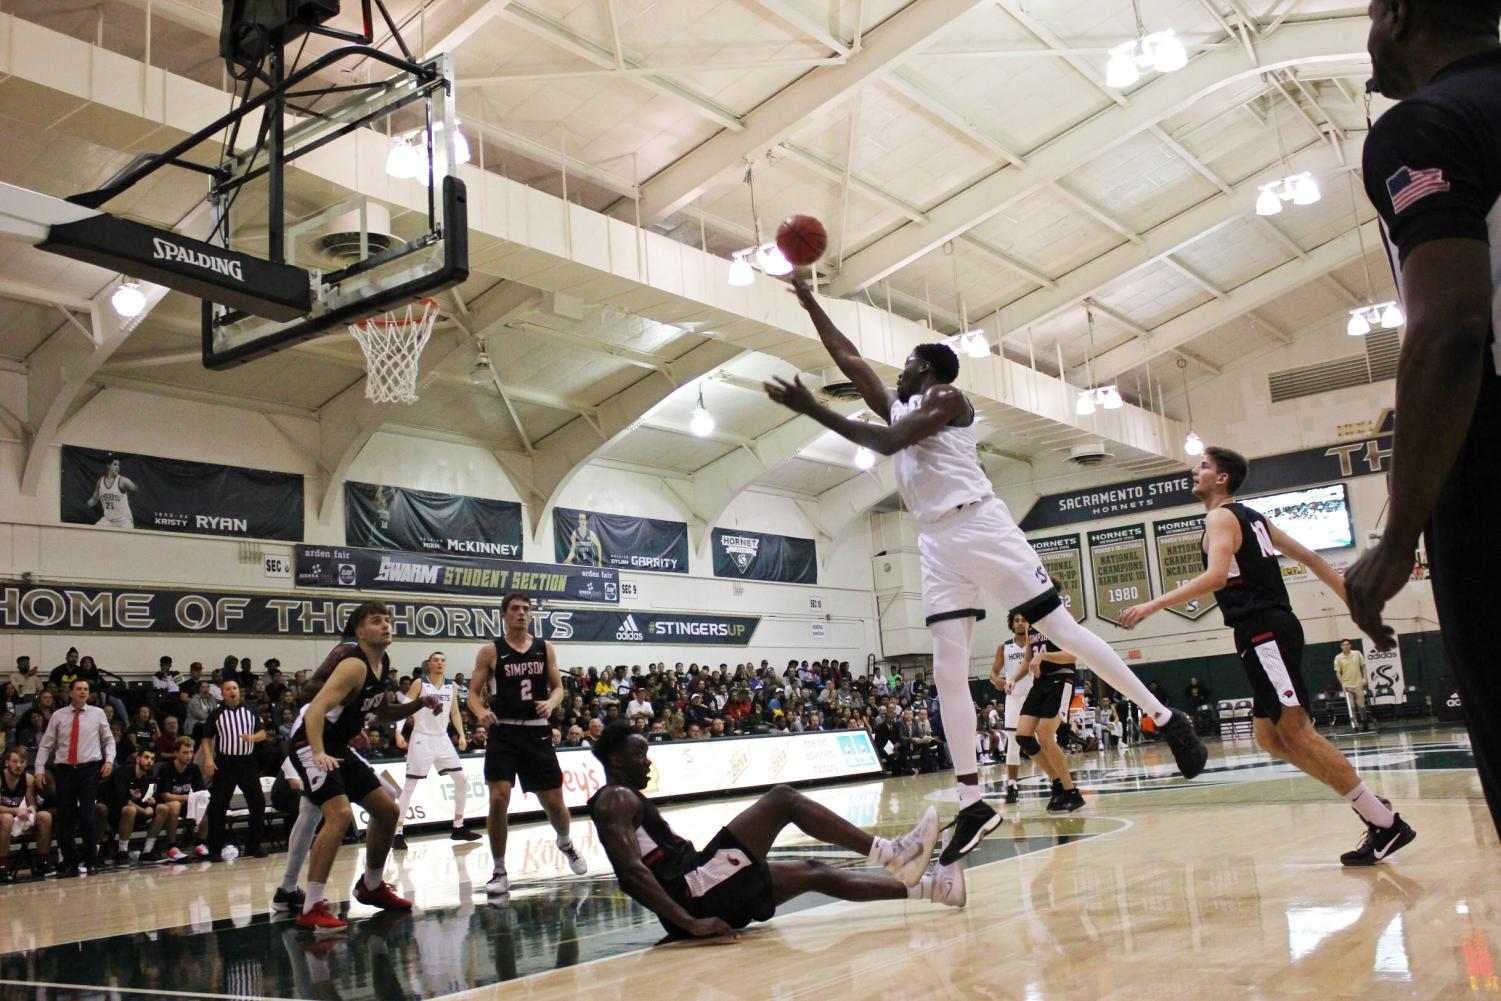 Sac State senior center Joshua Patton shoots the ball against Simpson on Friday, Nov. 8, at The Nest. Patton had a game-high 20 points on 9-11 from the field.